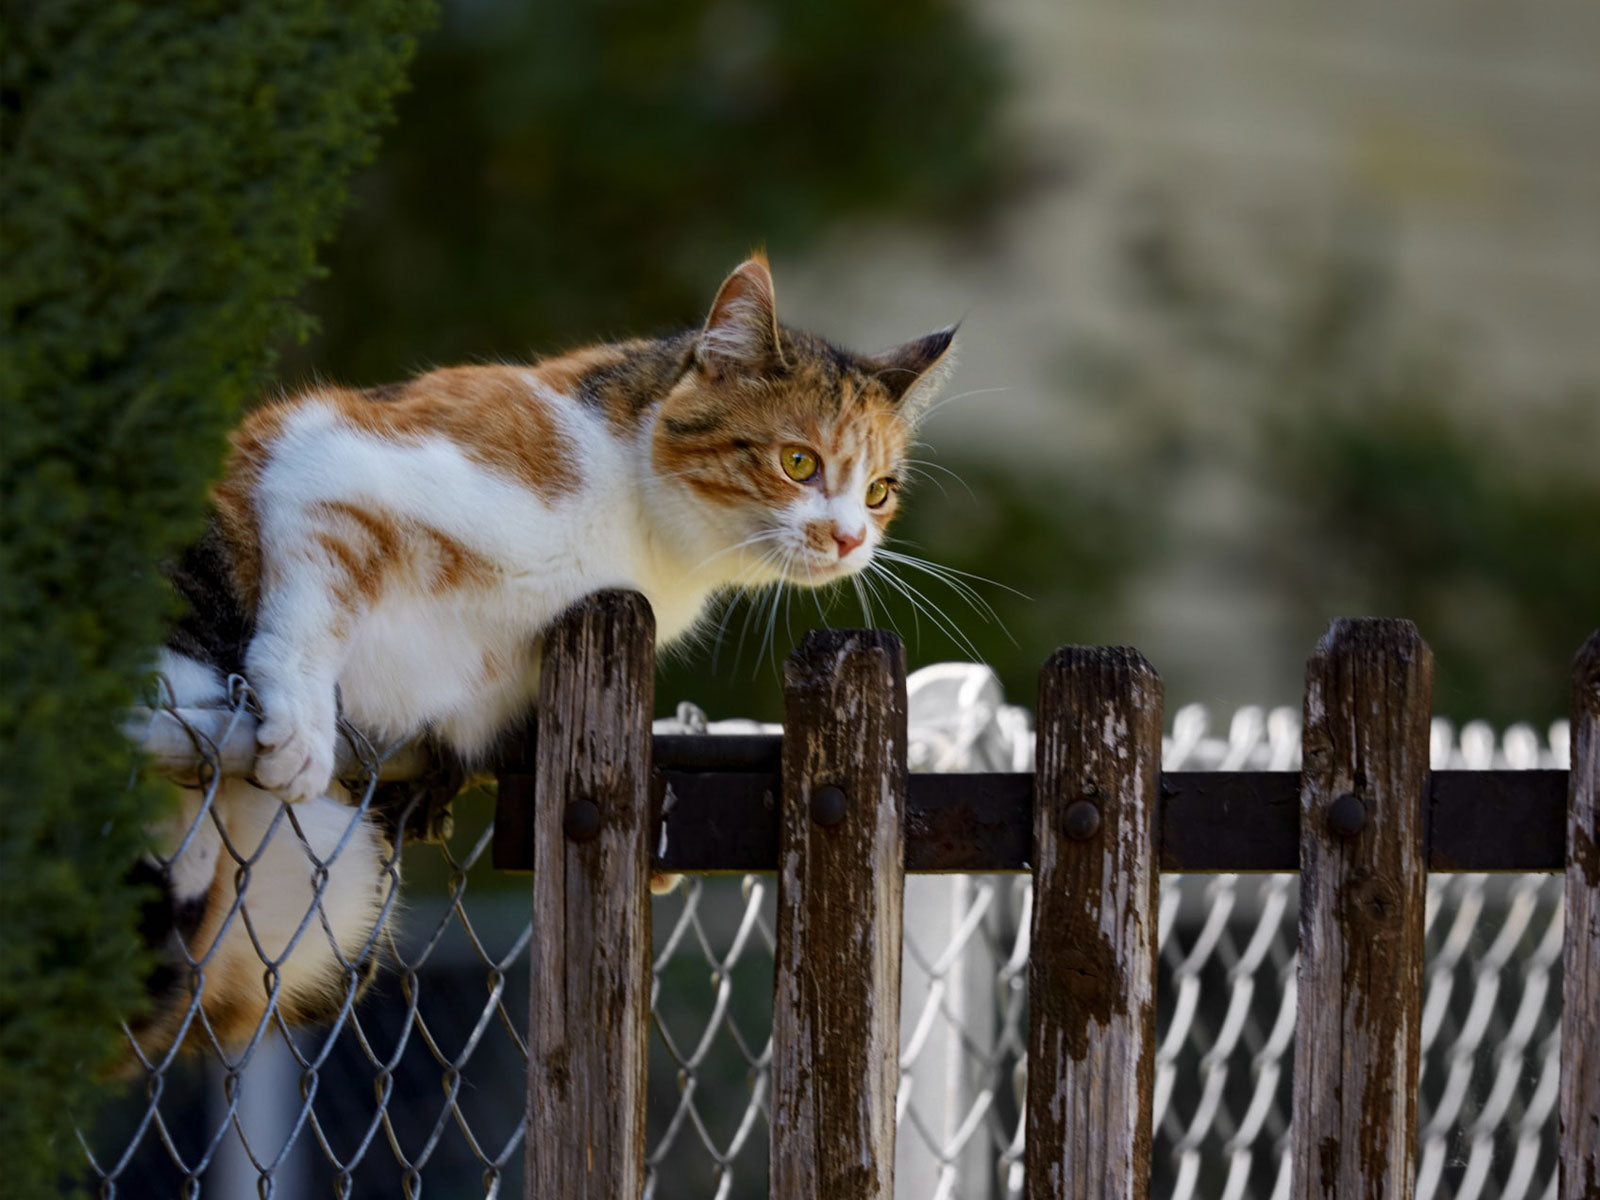 Cat Climbing over Chain Link Fence